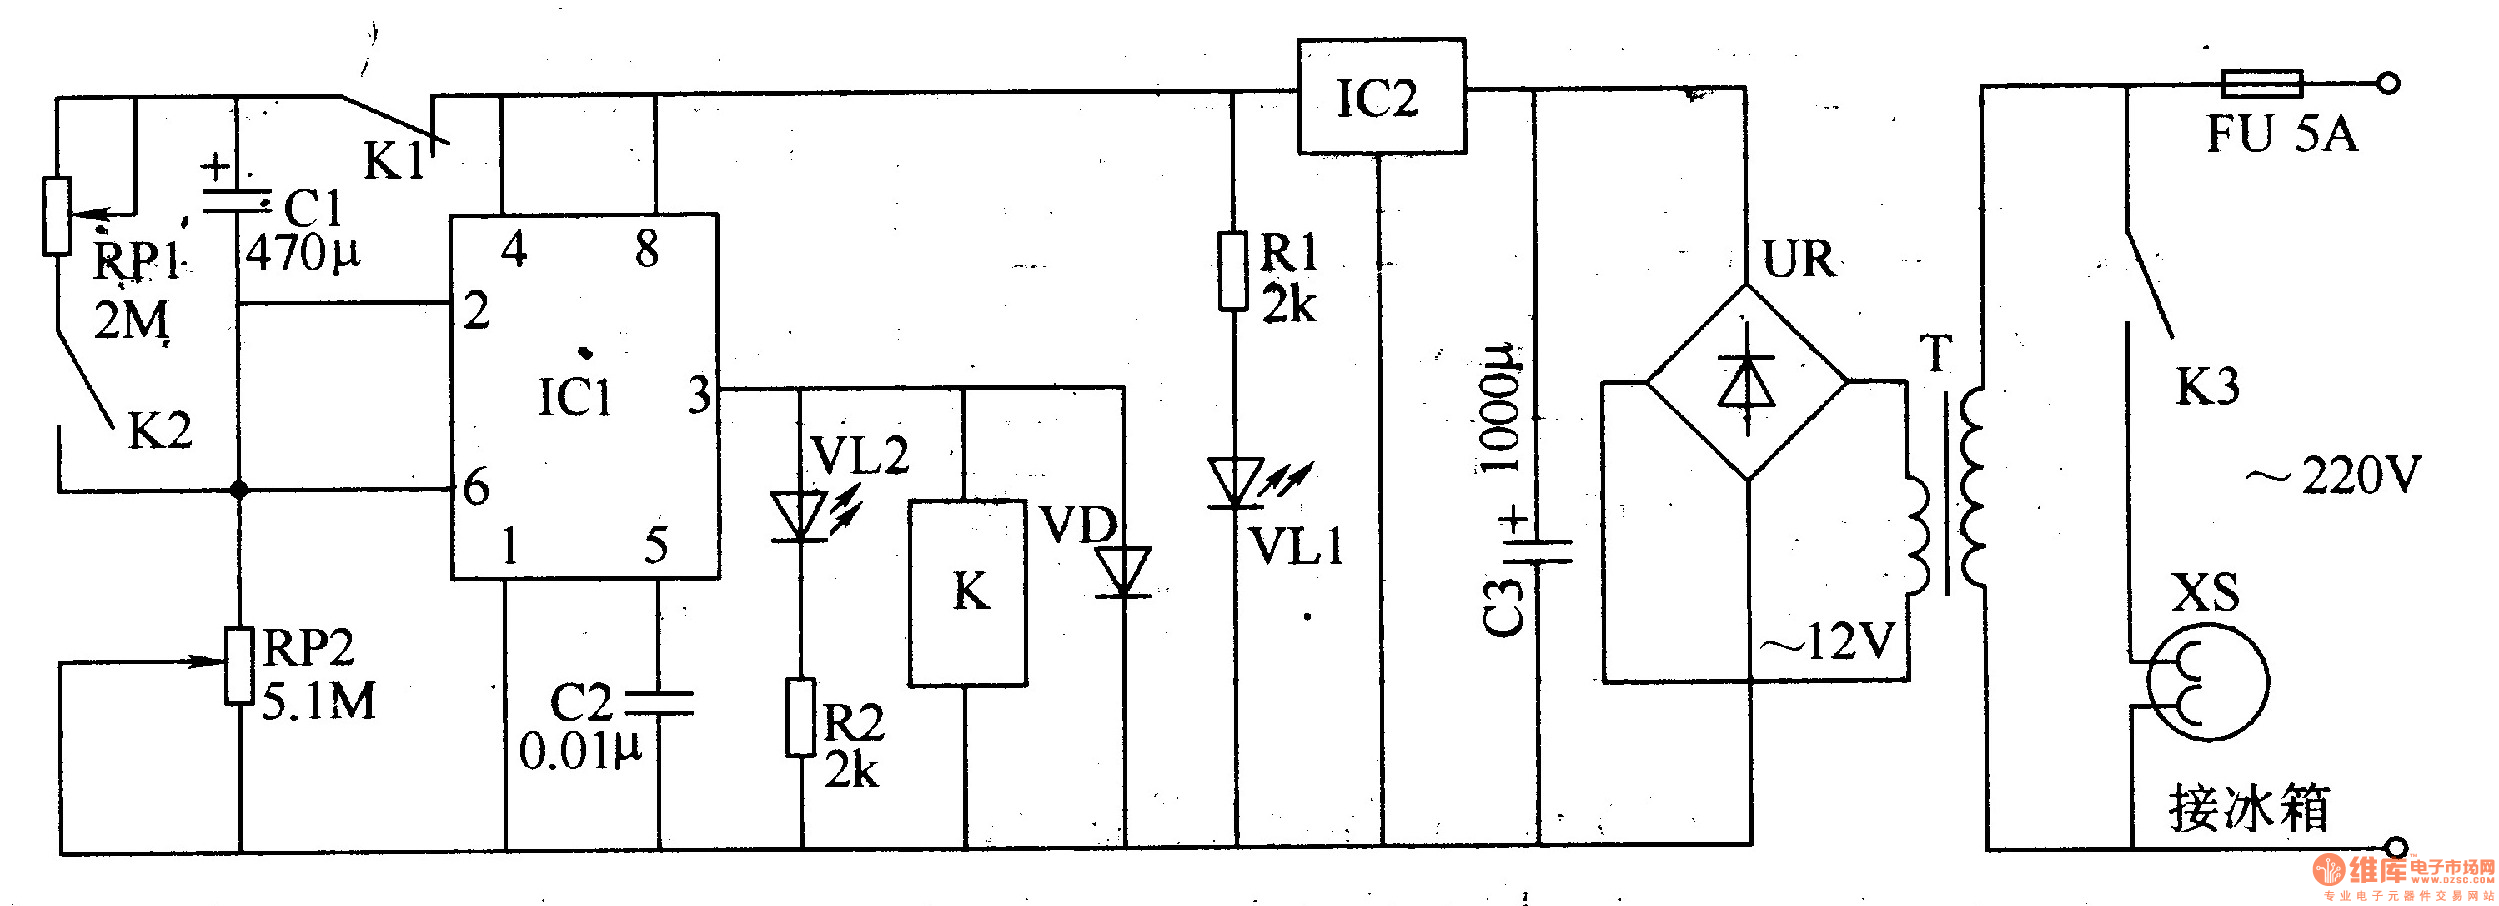 cycle timing controller 2 - time control - control circuit - circuit diagram